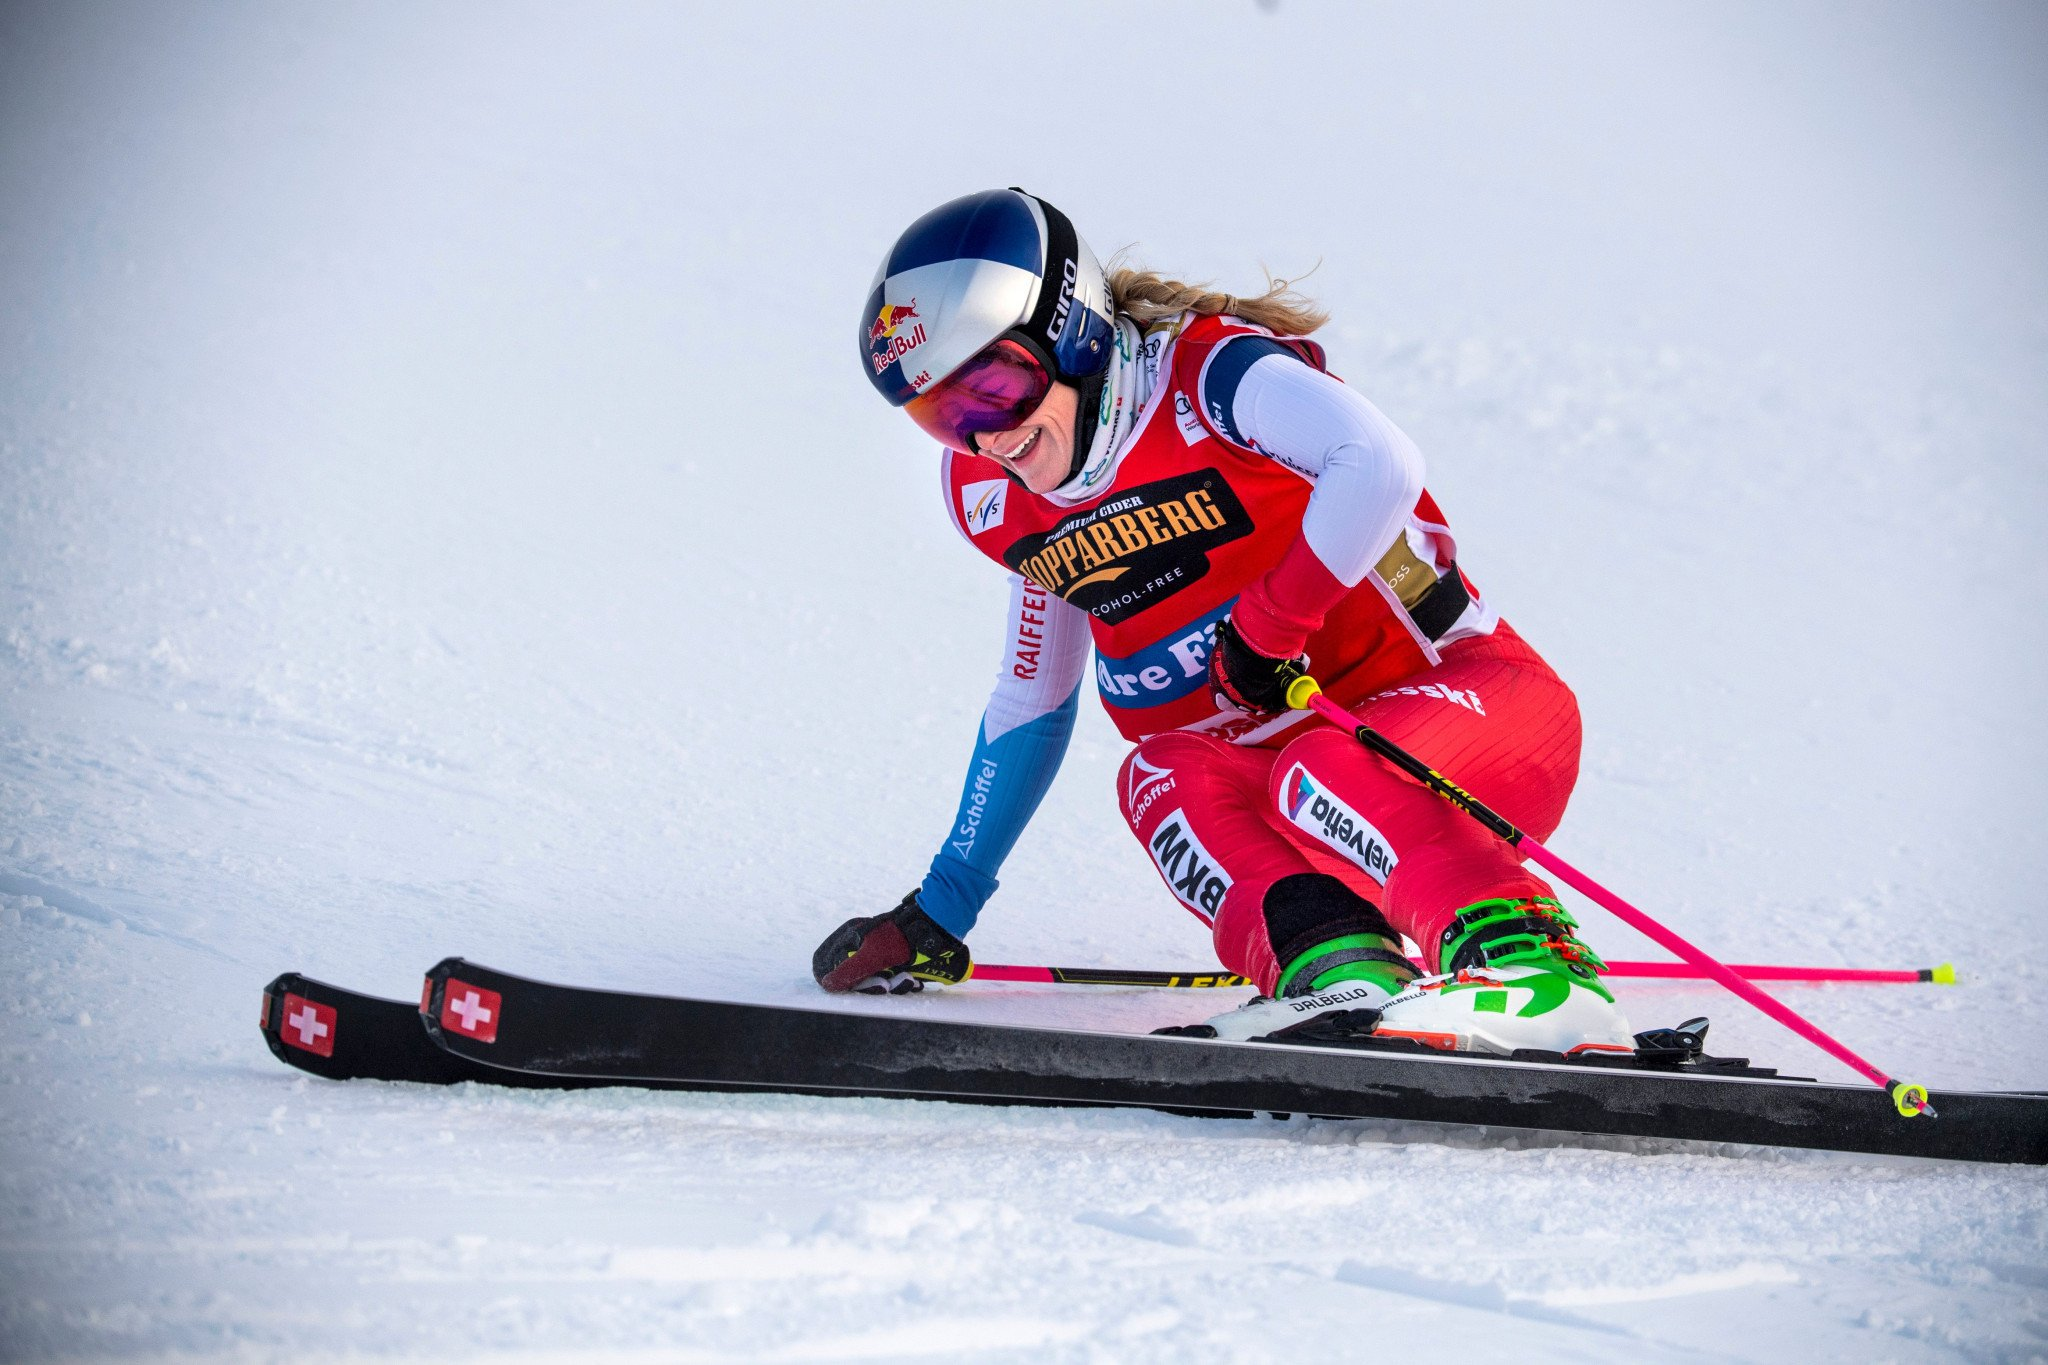 Smith tops qualification at FIS Ski Cross World Cup in Reiteralm